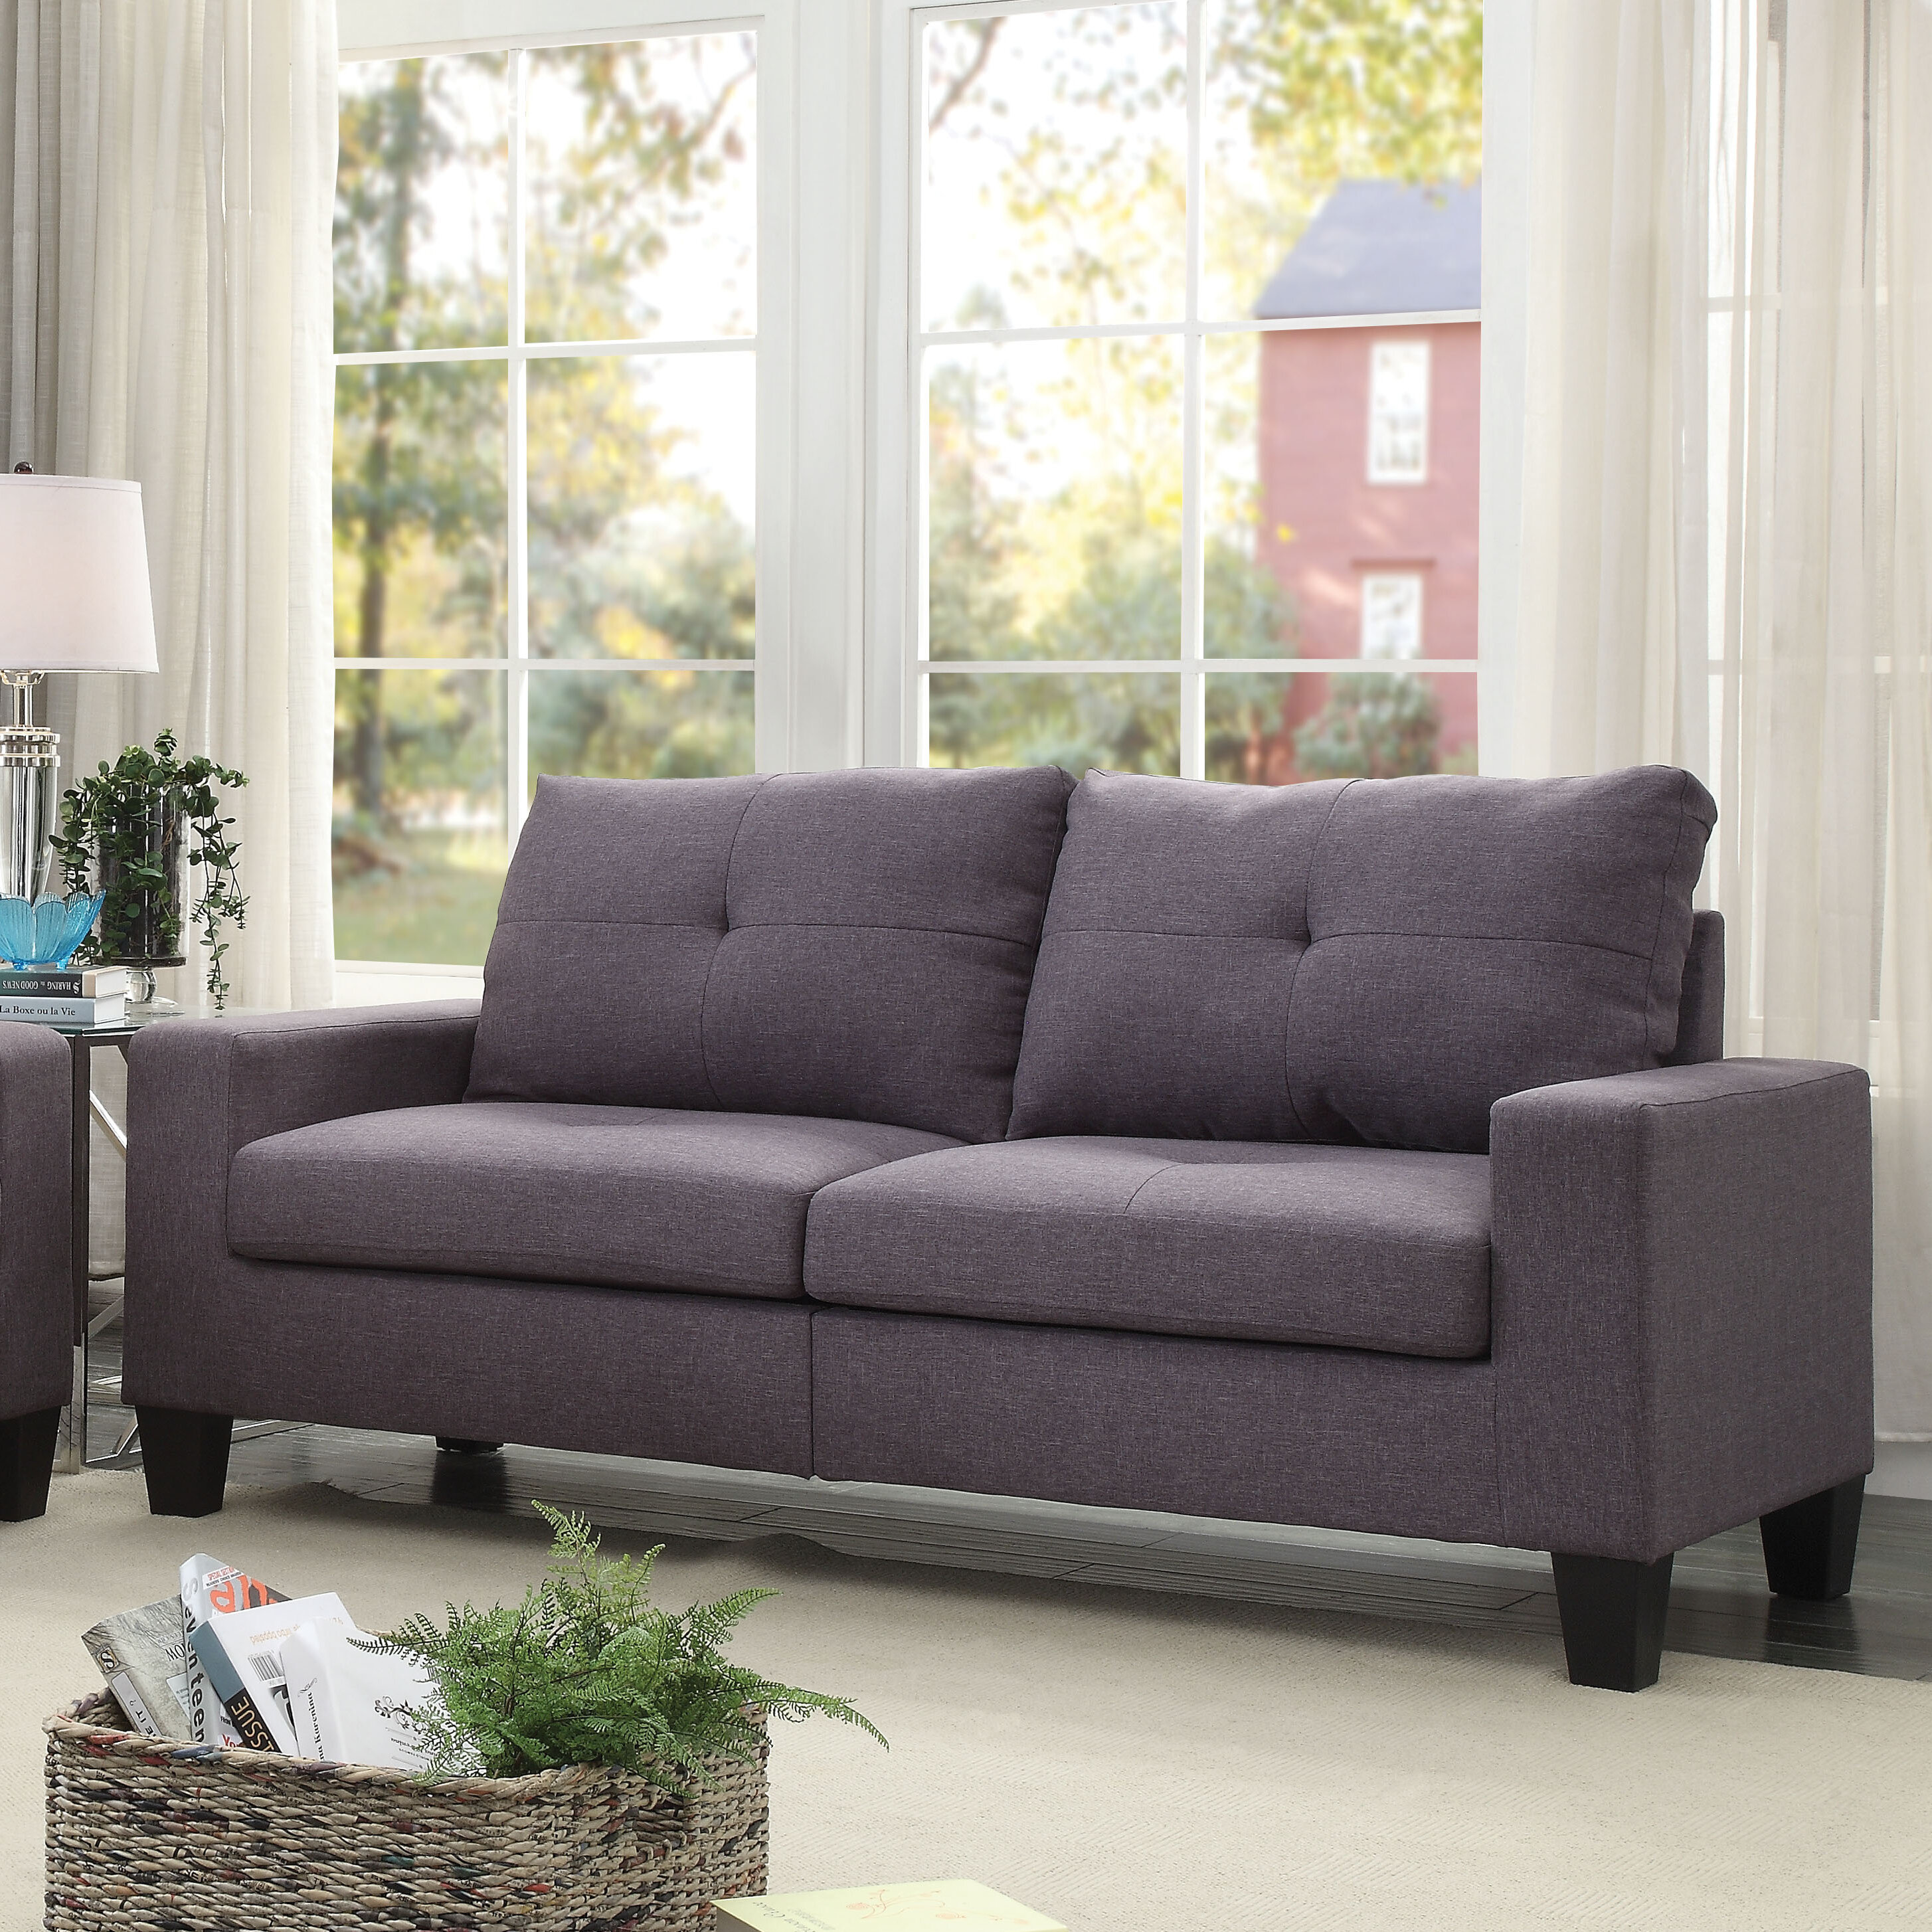 madison usa furniture loveseat pdx wi classic wayfair futons reviews home